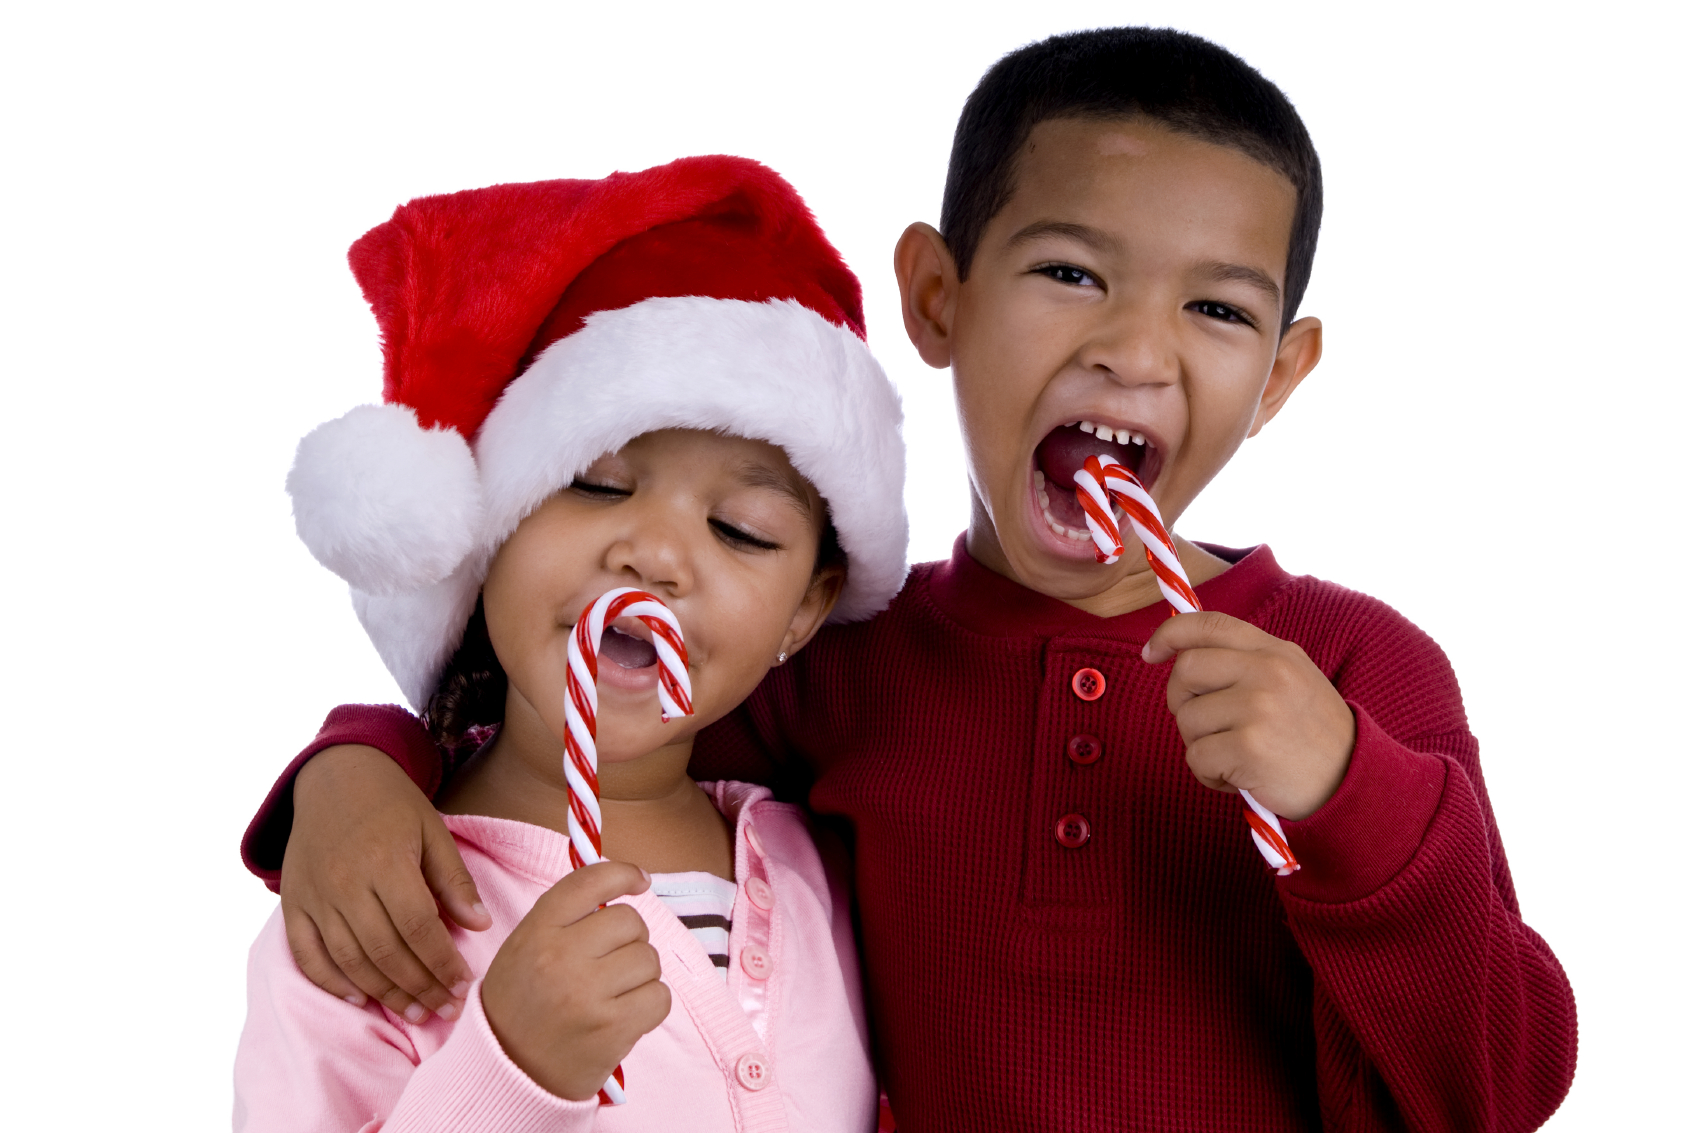 Kids with candy canes